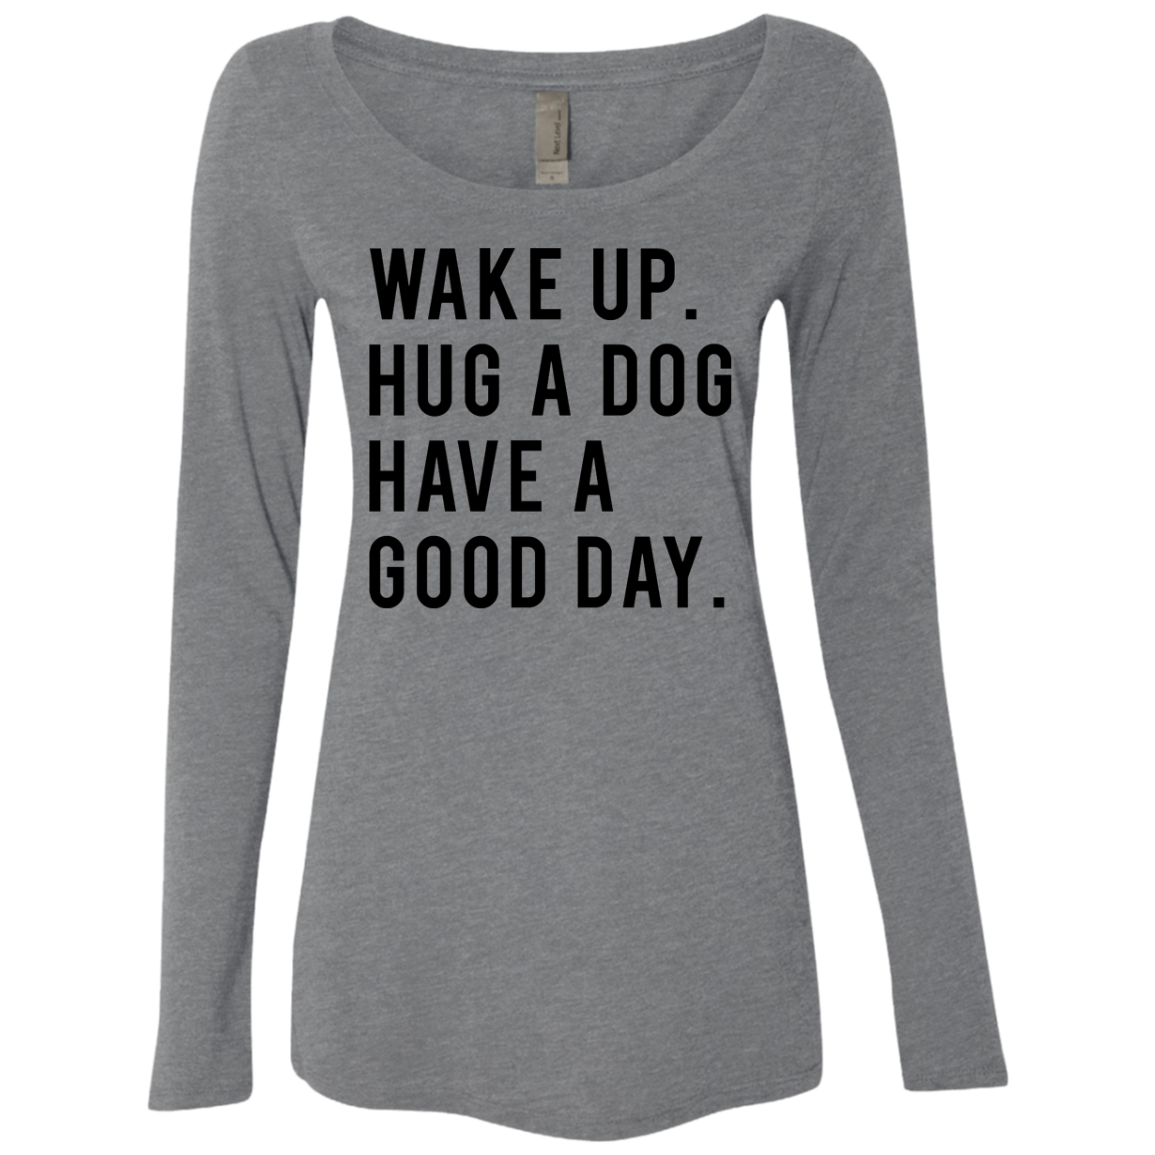 Wake Up Hug a Dog Have a Good Day Women's Long Sleeve Tee